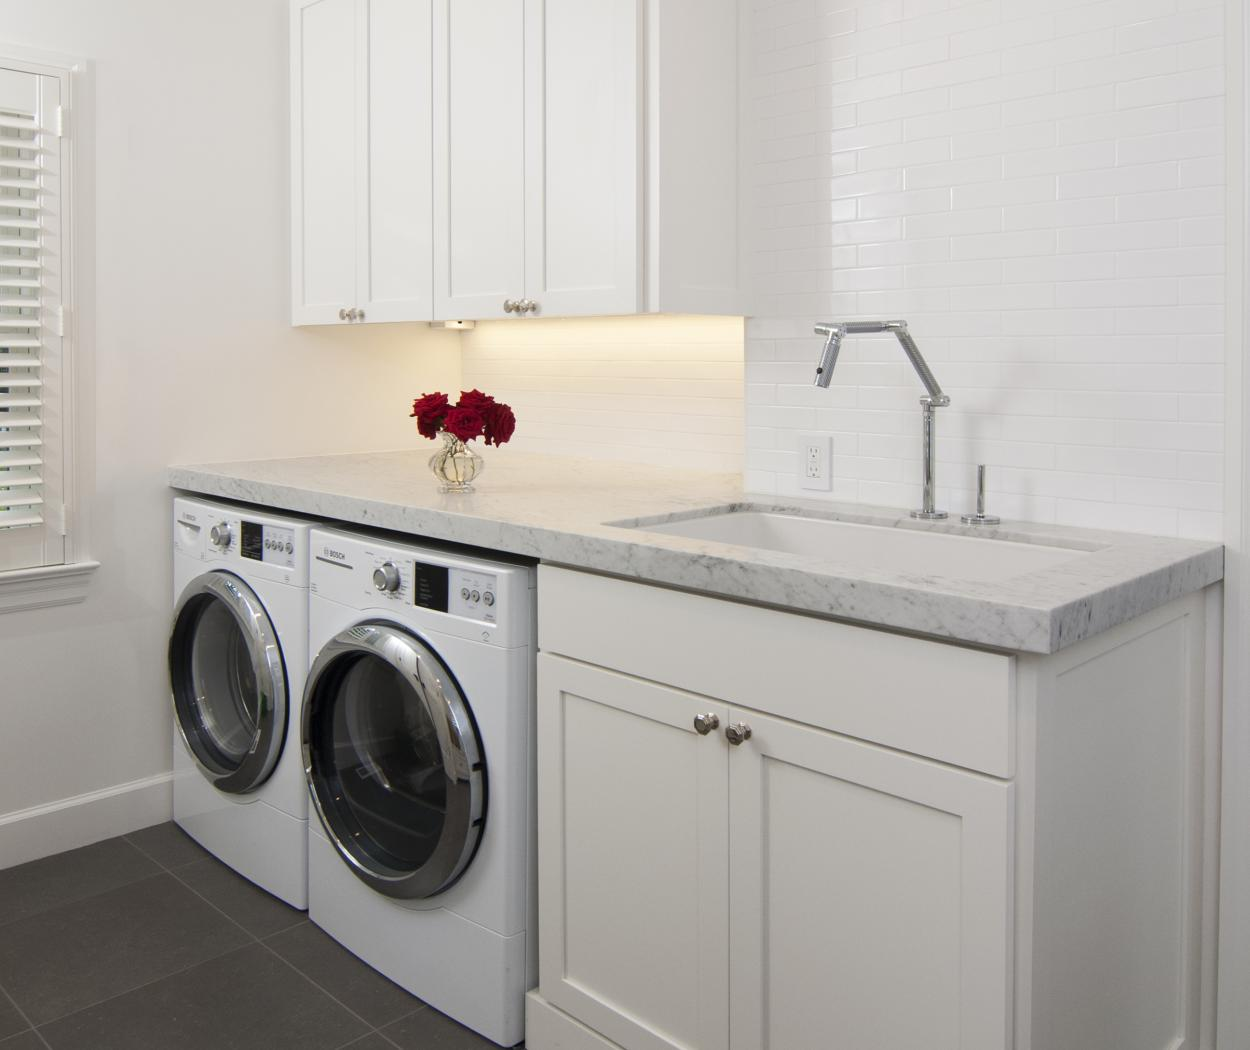 White Transitional, Shaker Style Laundry Room with a Beautiful White Marble Countertop and Bosch Washer - Dryer